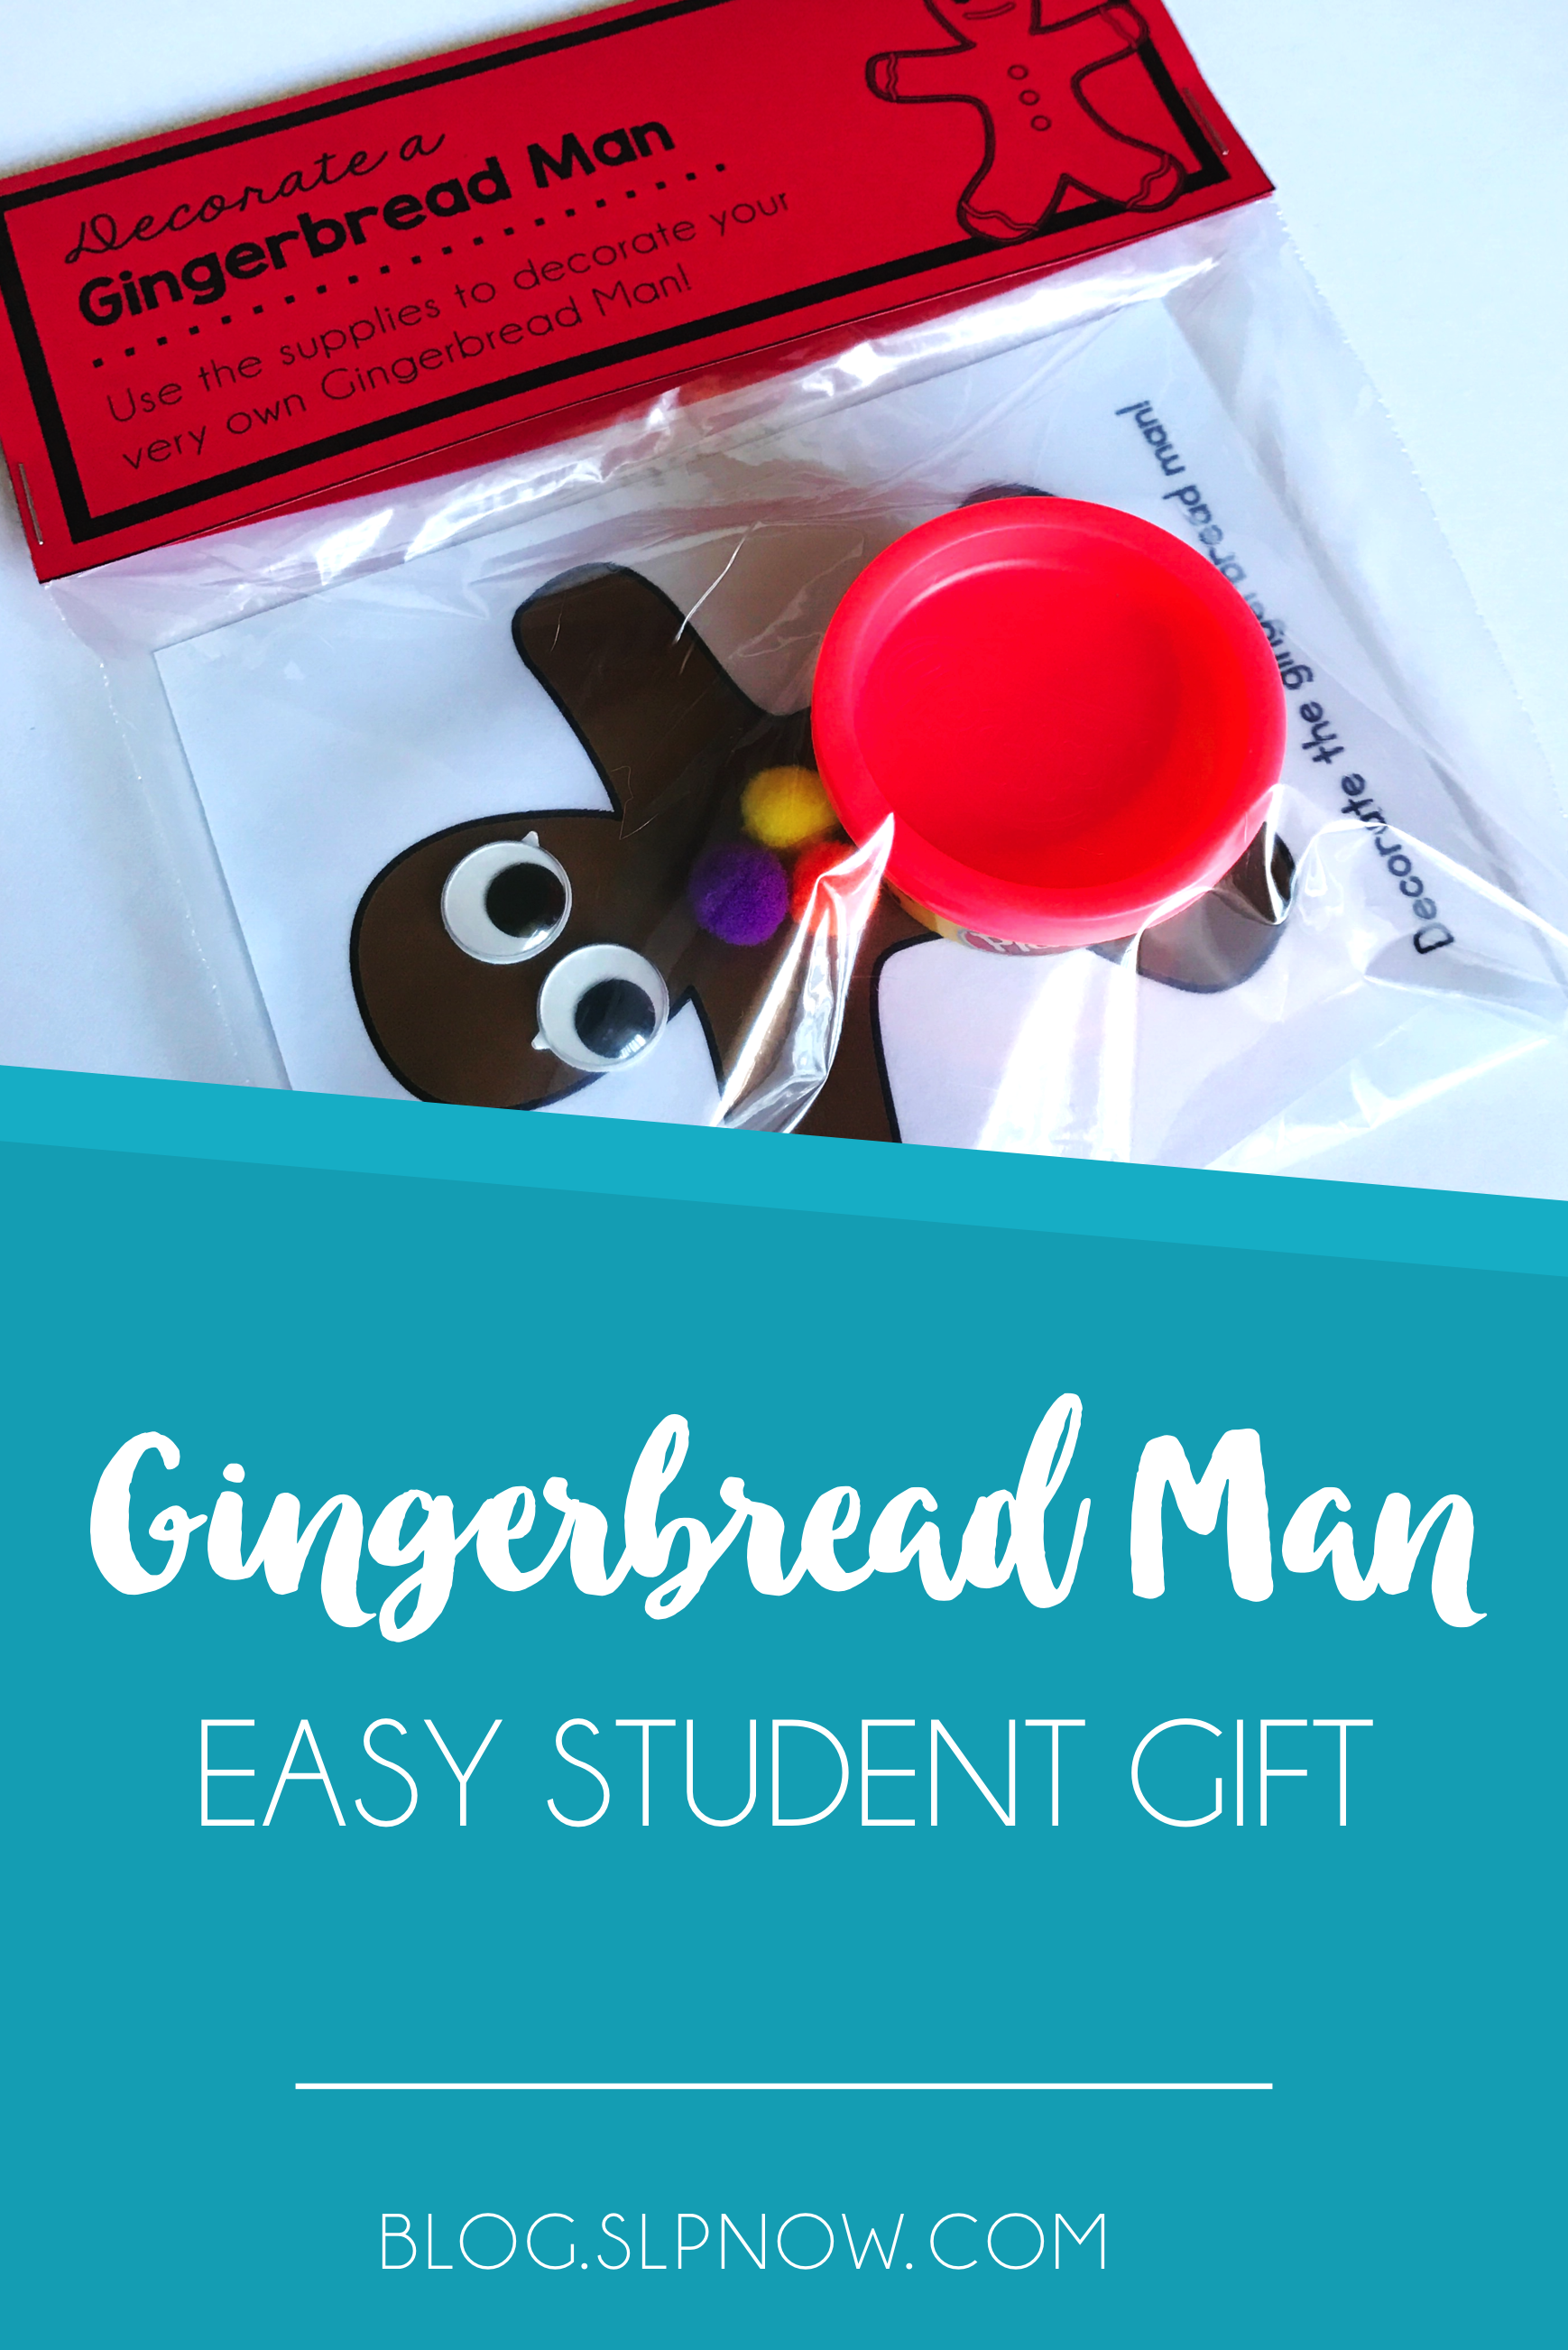 A gingerbread man theme makes for the perfect opportunity for an easy student gift! Watch the video inside this blog post to learn about the quick and easy student gift that I made for my kiddos before the holiday break.